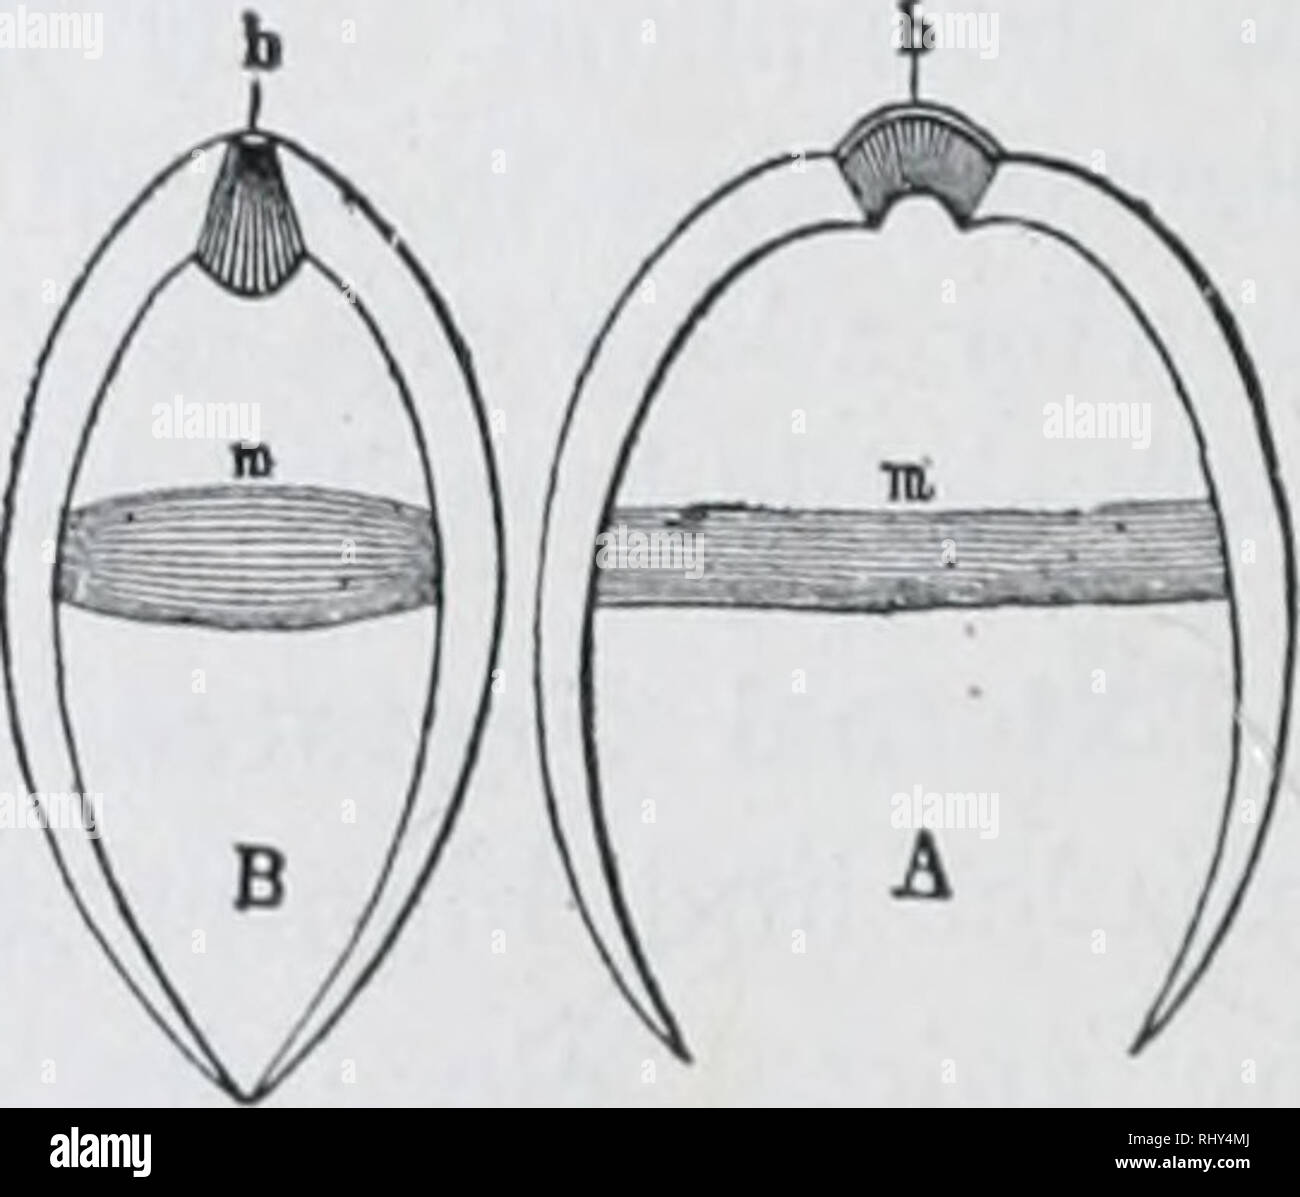 zoology  fig  i88 - - anodon, or fresh-water mussel  shells for valves in  pumps  lay the shells, fitted together, in your hand with the hingt side  away from